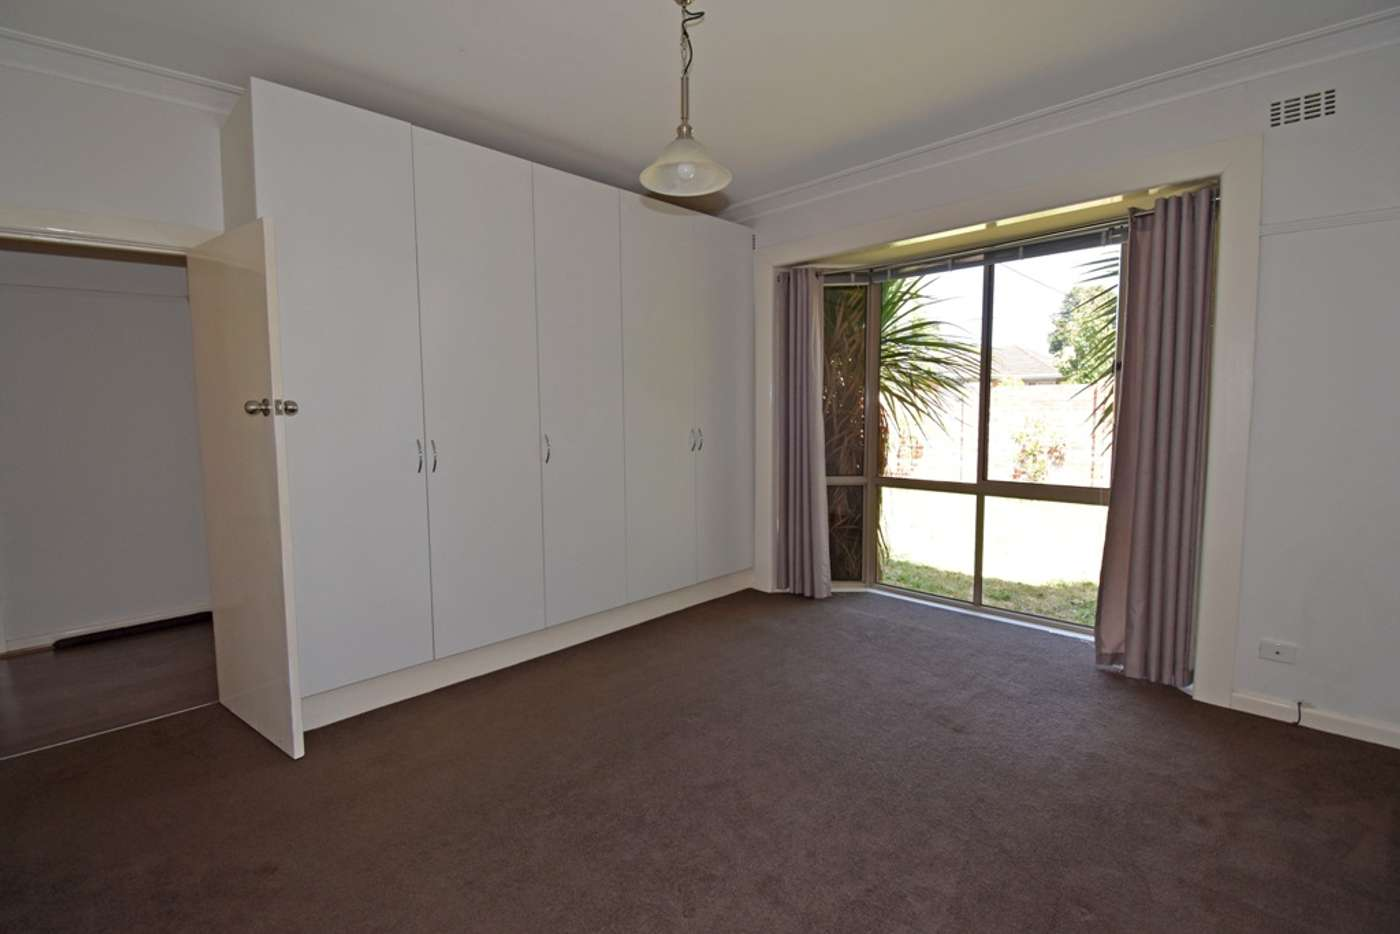 Seventh view of Homely house listing, 56 Jasper Road, Bentleigh VIC 3204